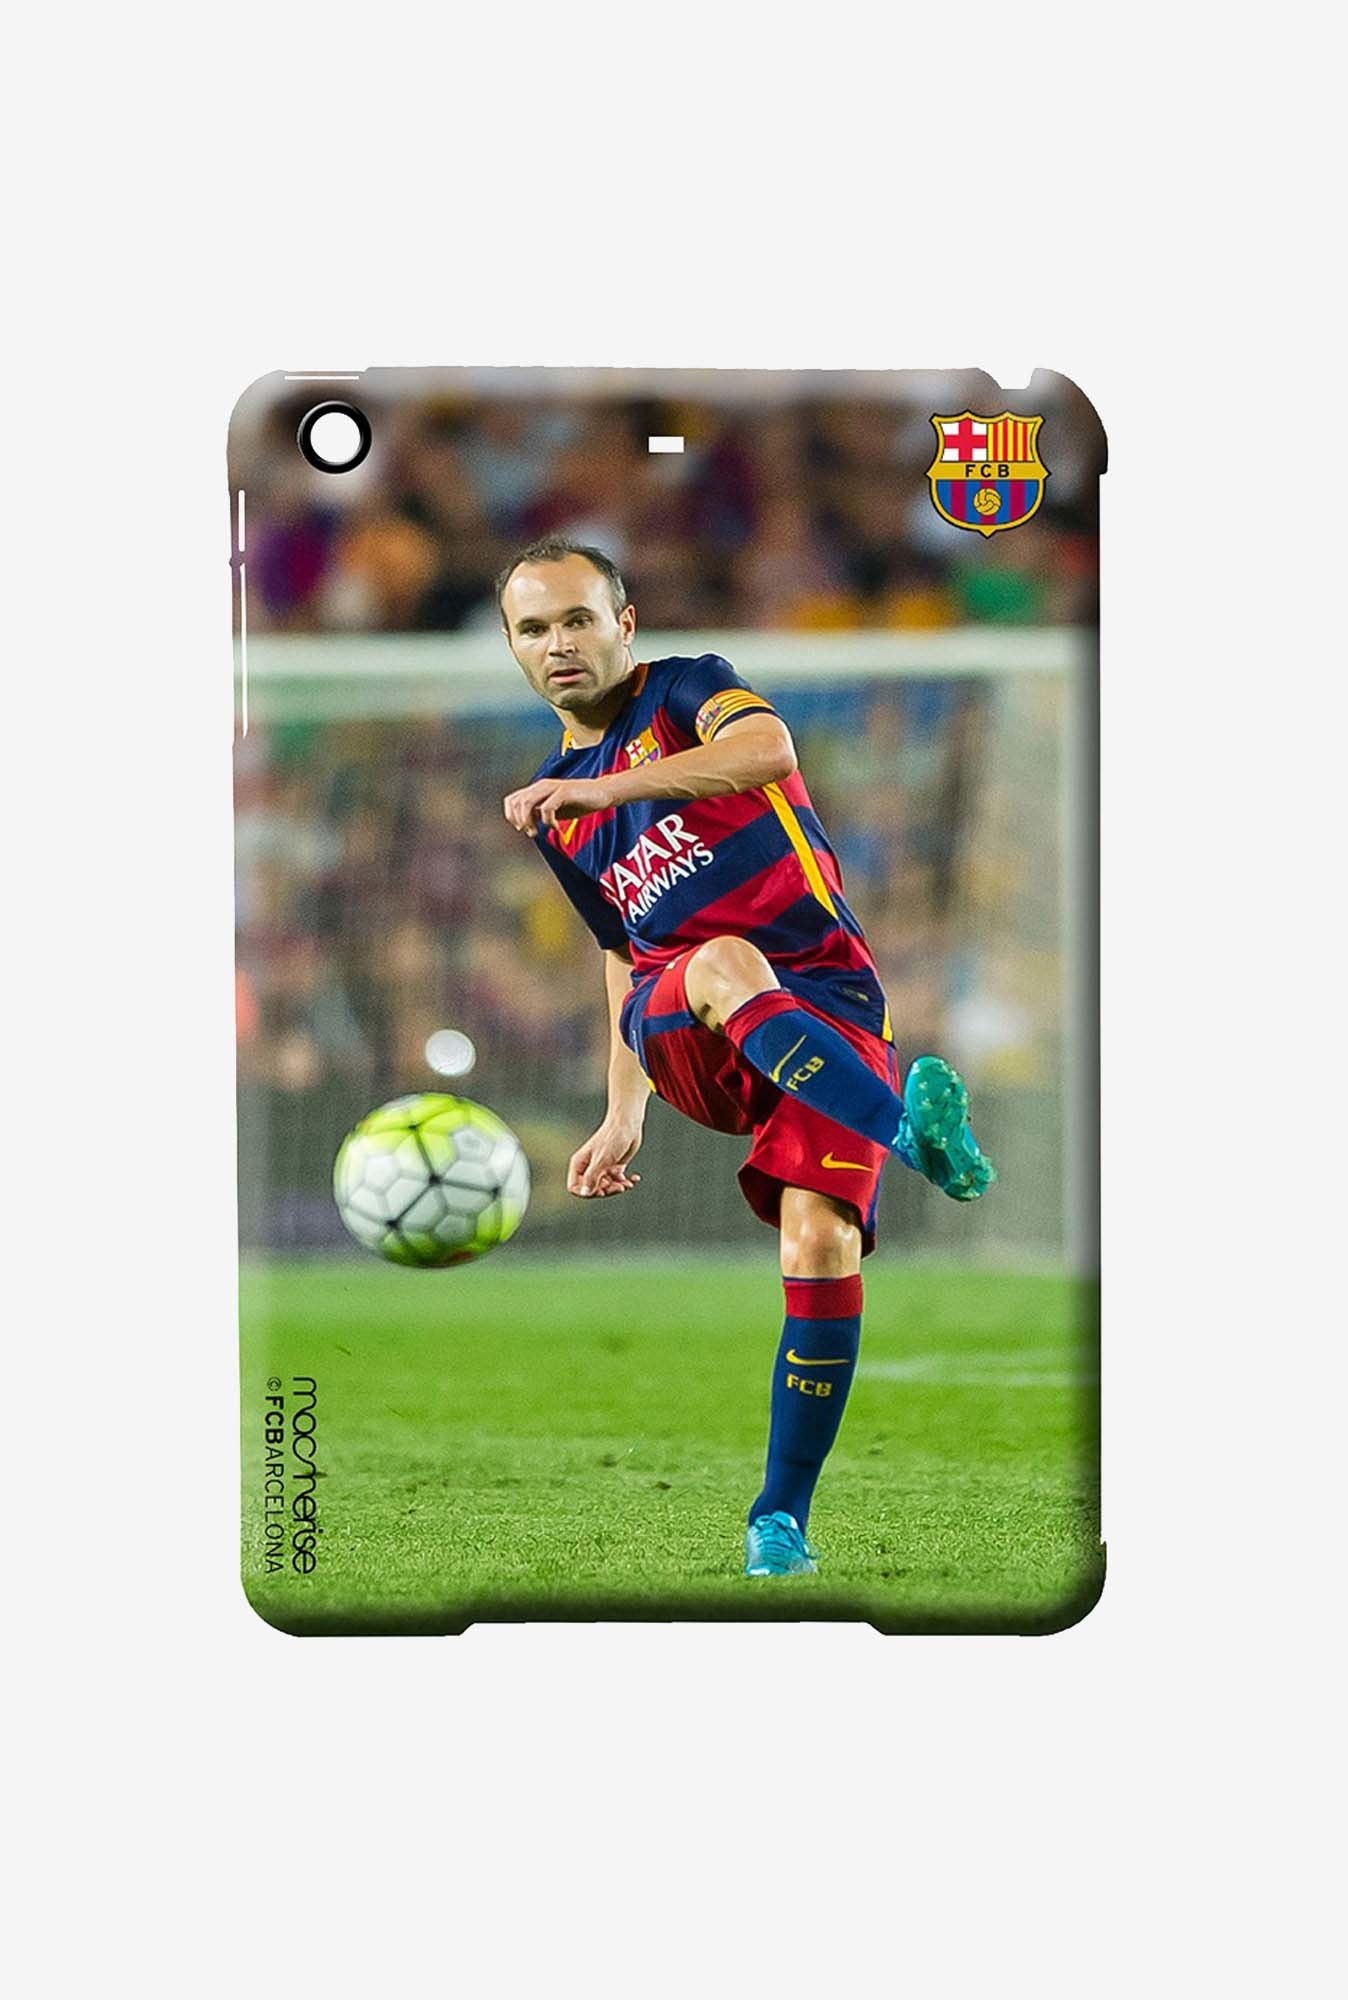 Macmerise Strike Iniesta Pro Case for iPad 2/3/4